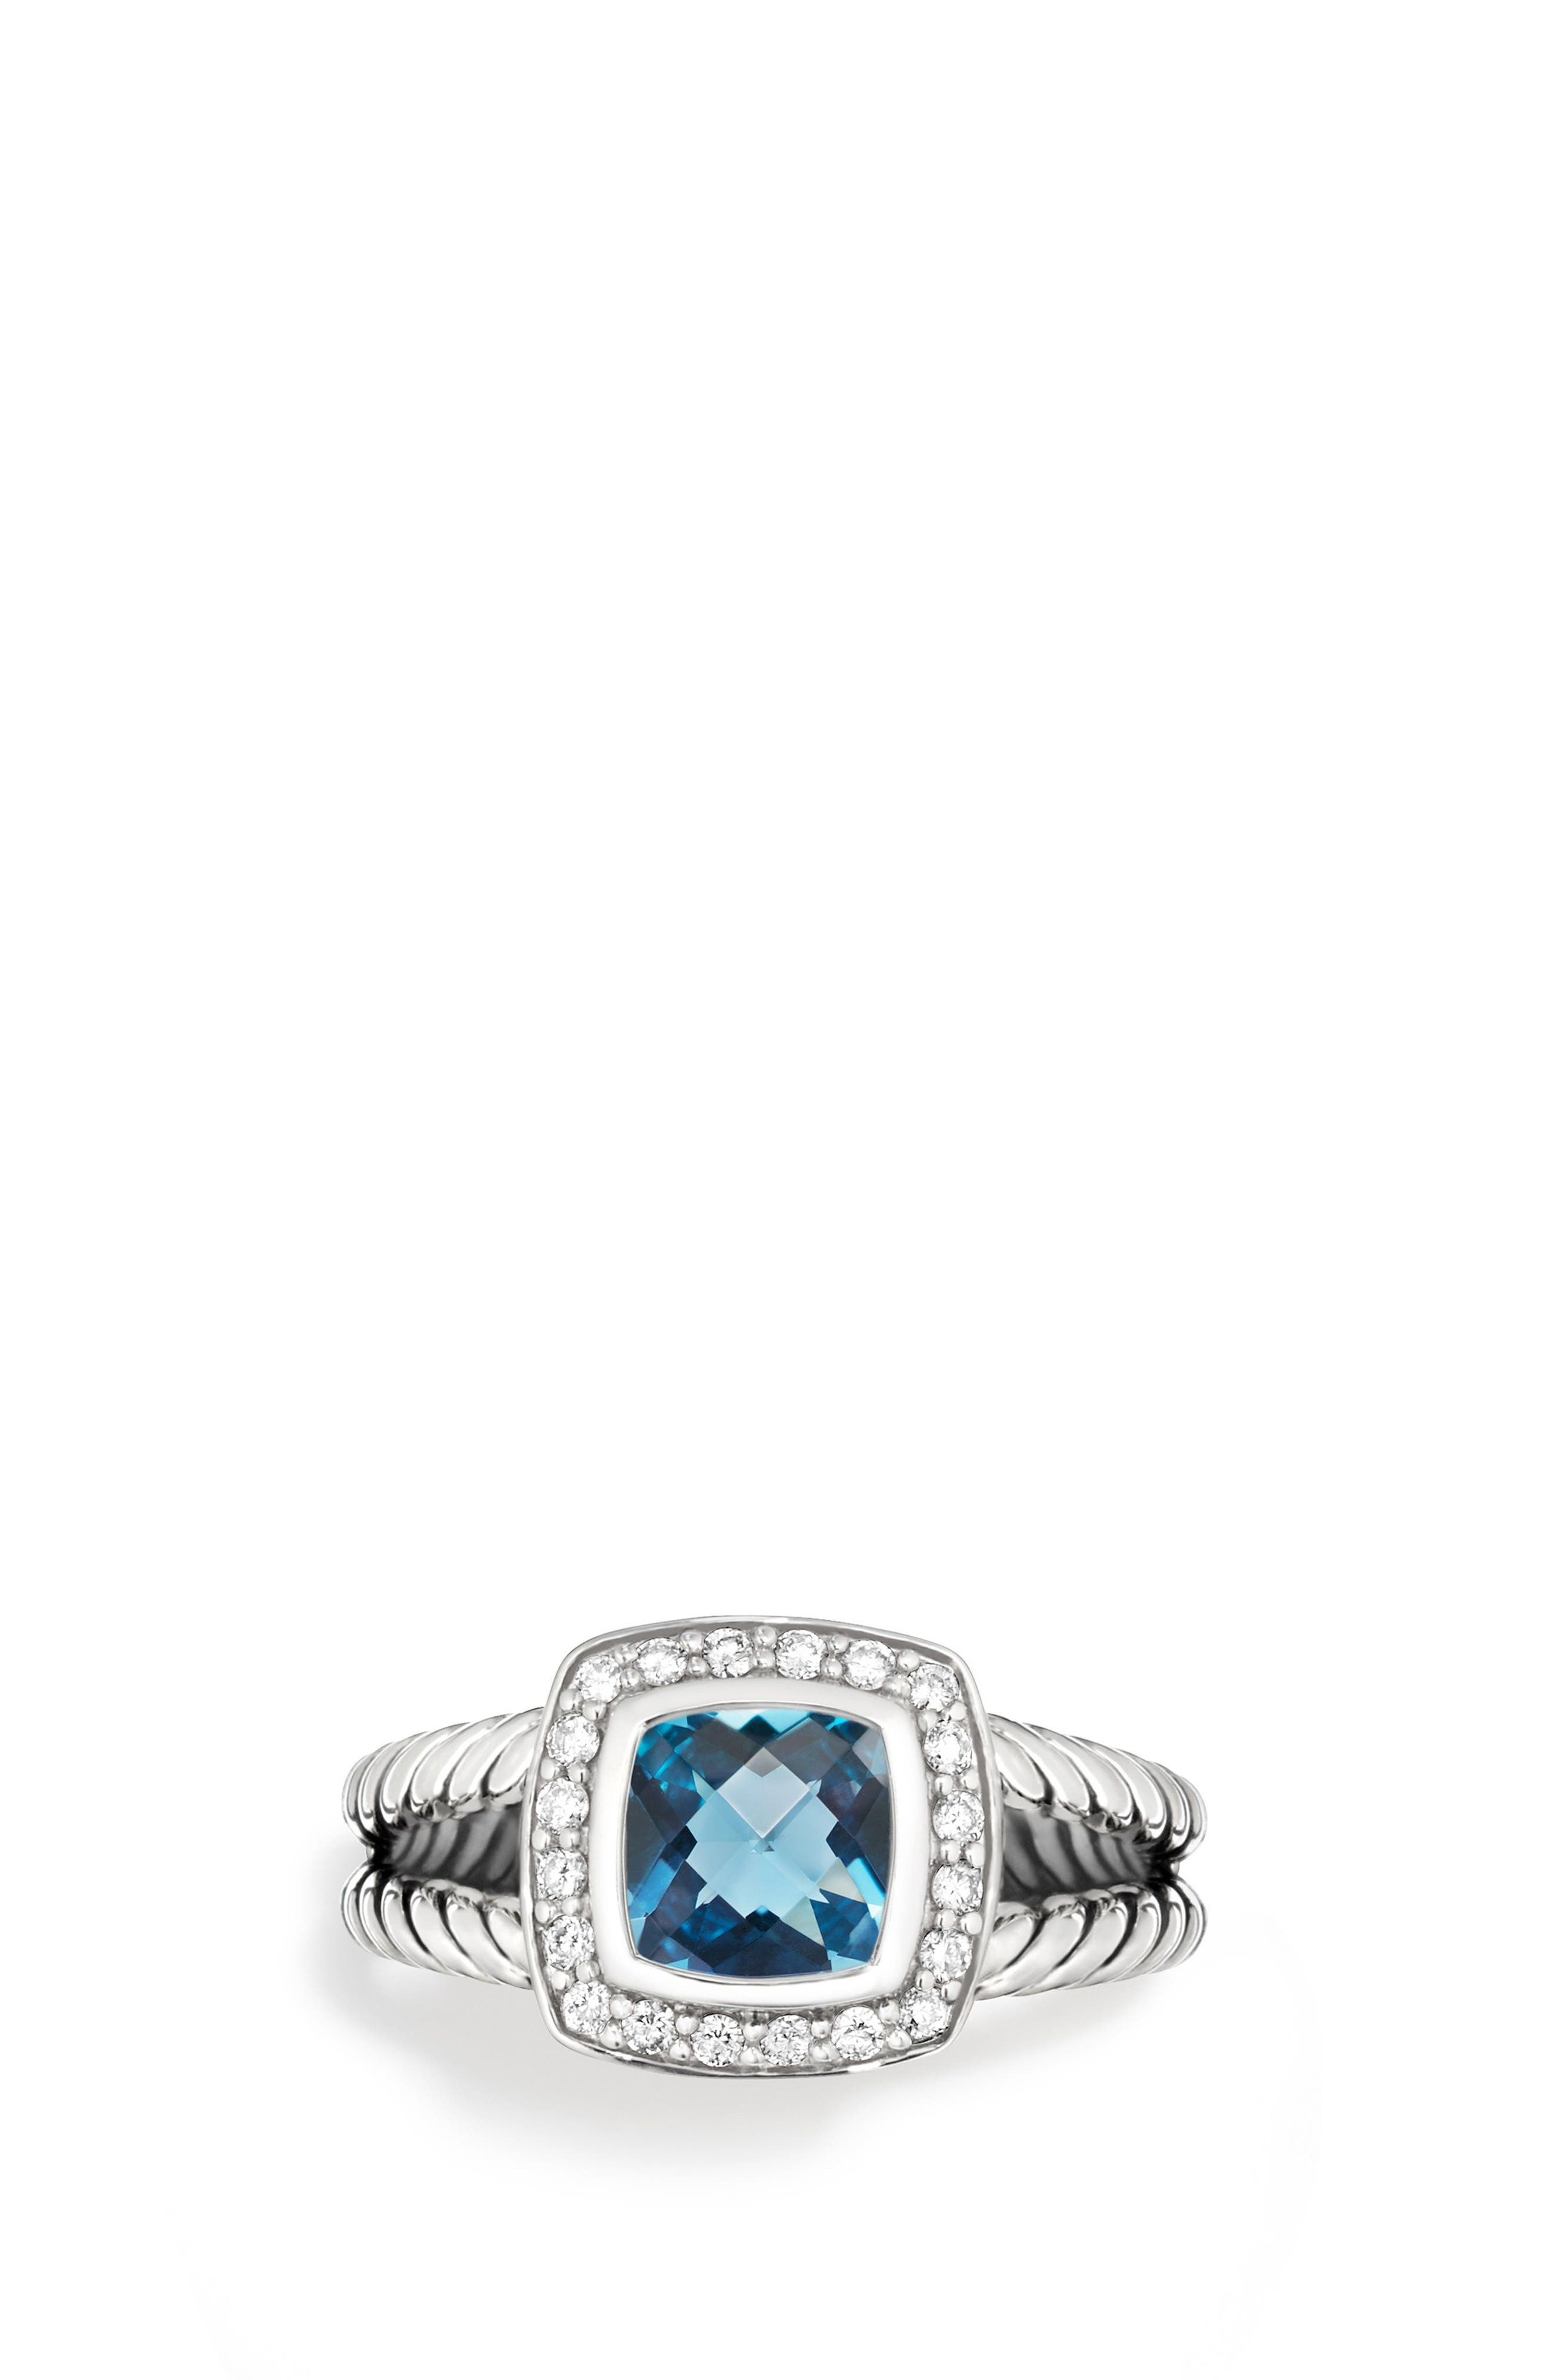 Petite Albion<sup>®</sup> Ring with Diamonds,                             Main thumbnail 1, color,                             HAMPTON BLUE TOPAZ